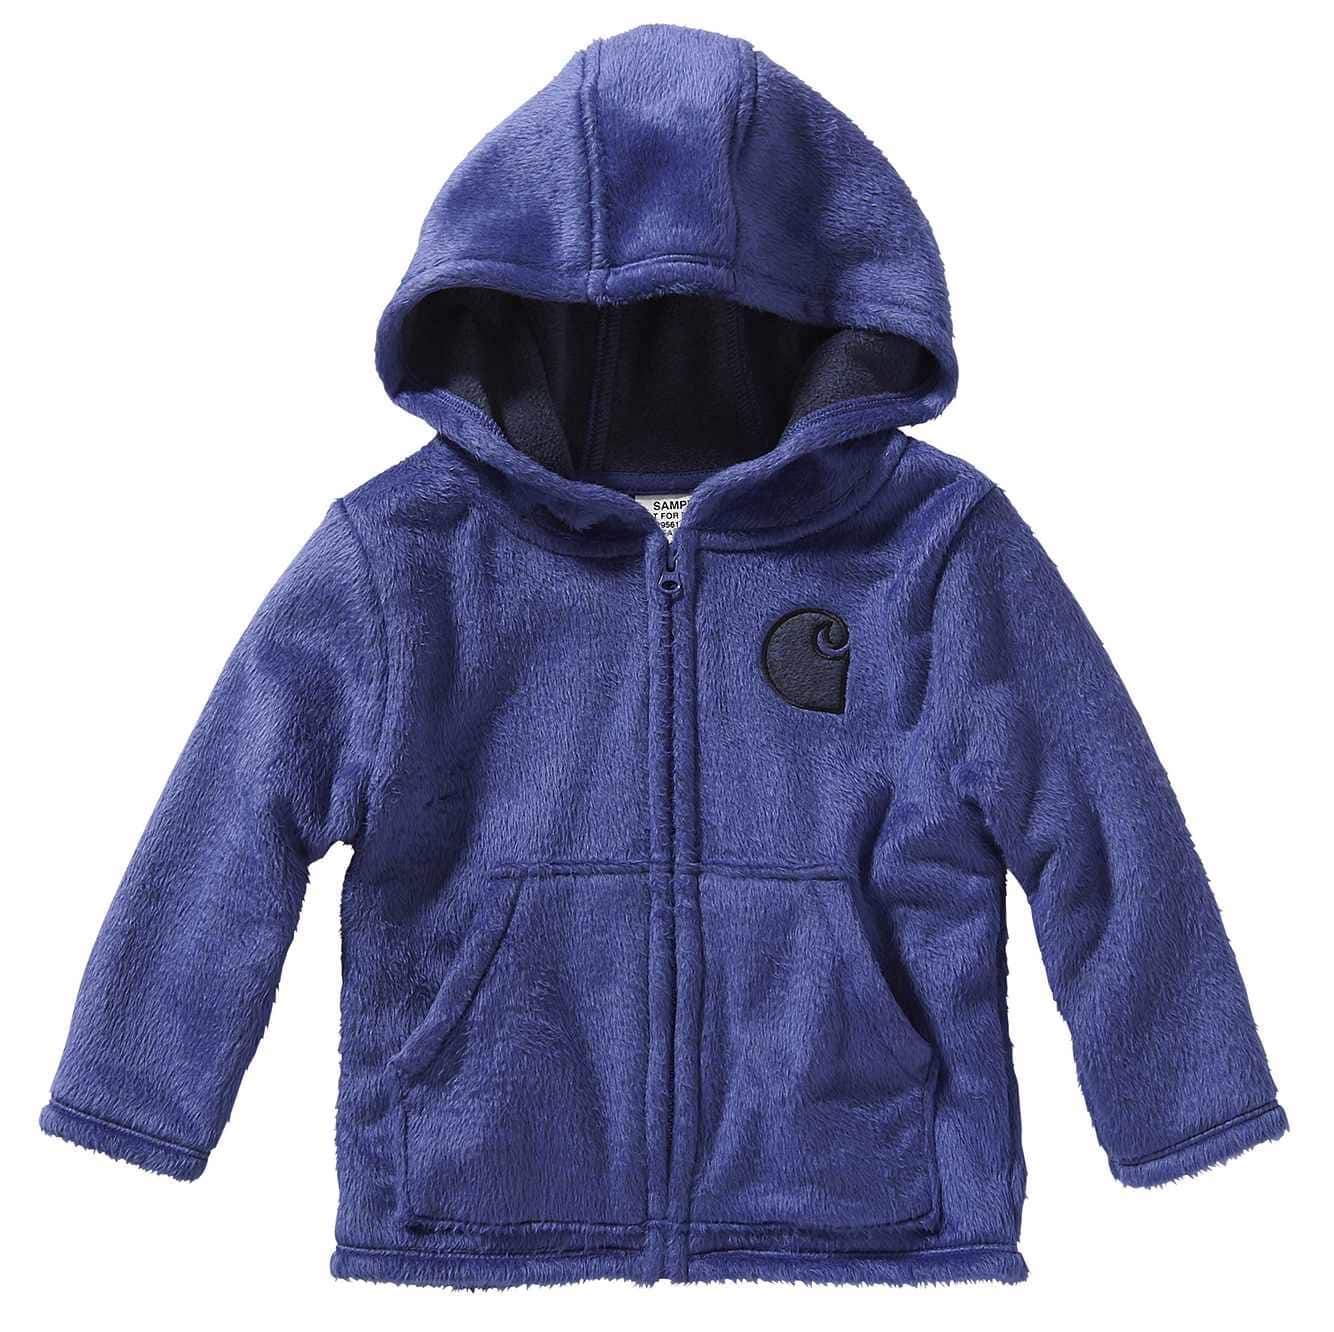 Picture of Hooded Cozy Fleece Jacket in Dark Grape